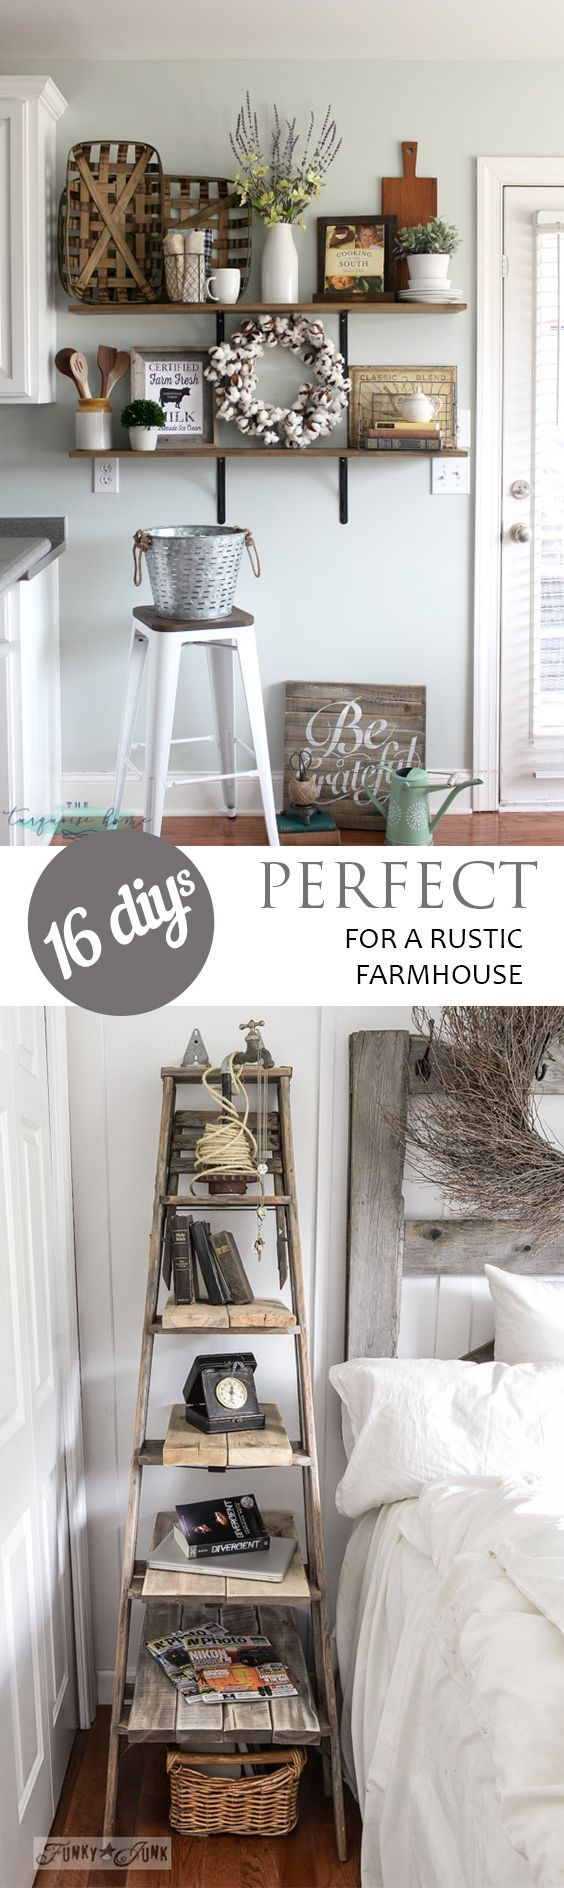 Best 25+ Rustic farmhouse decor ideas on Pinterest | Rustic ...